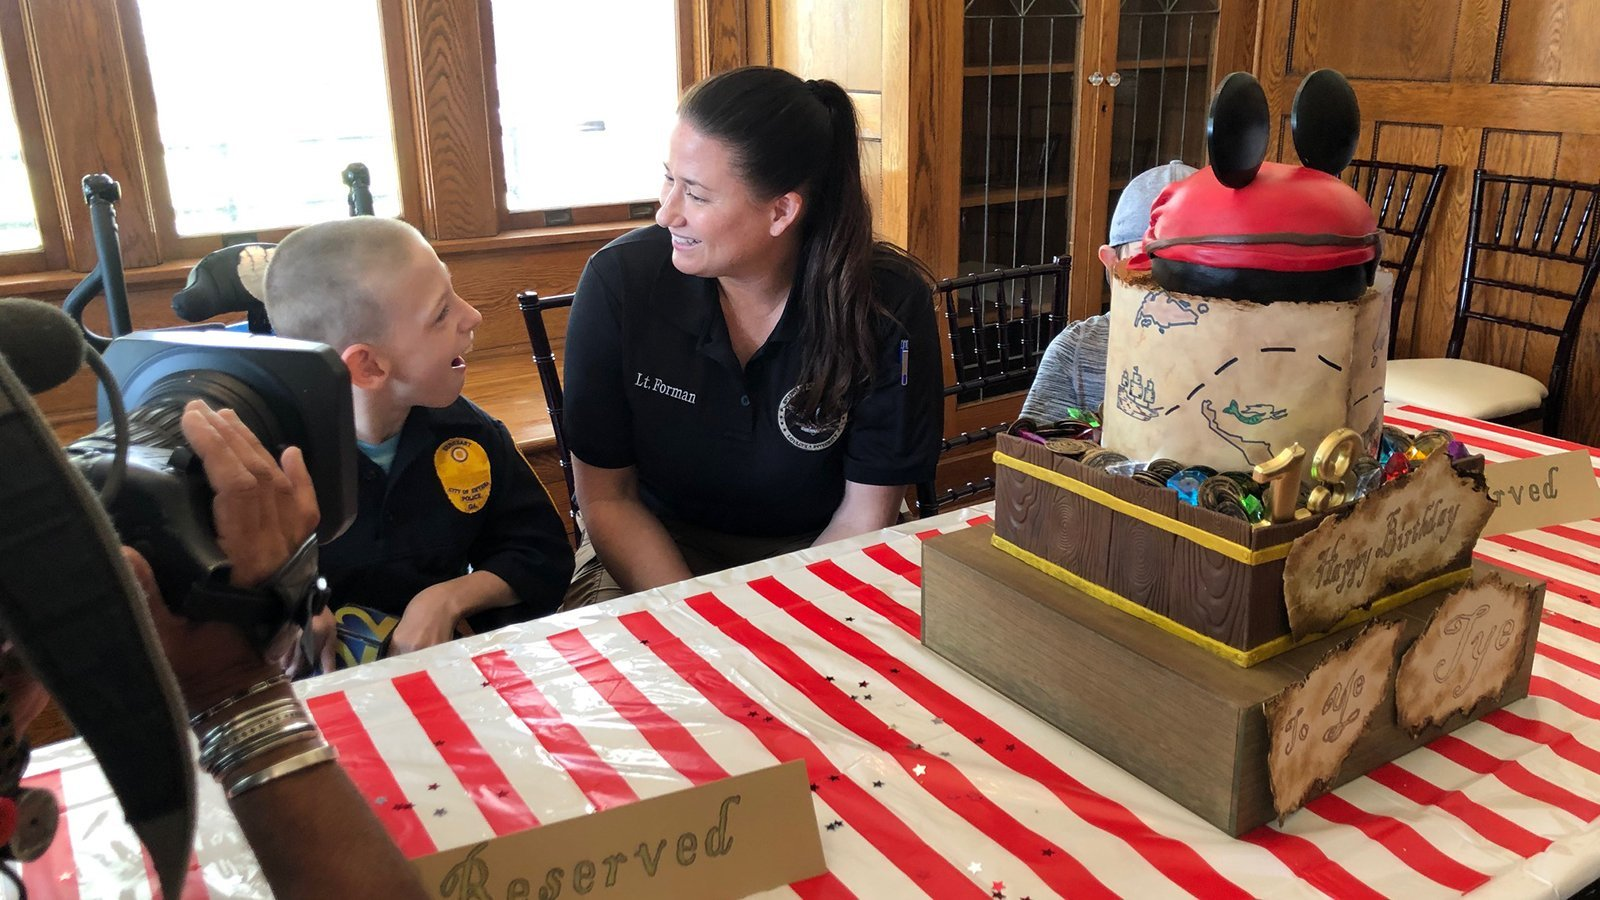 Georgia police throw a surprise birthday party for boy with cerebral palsy